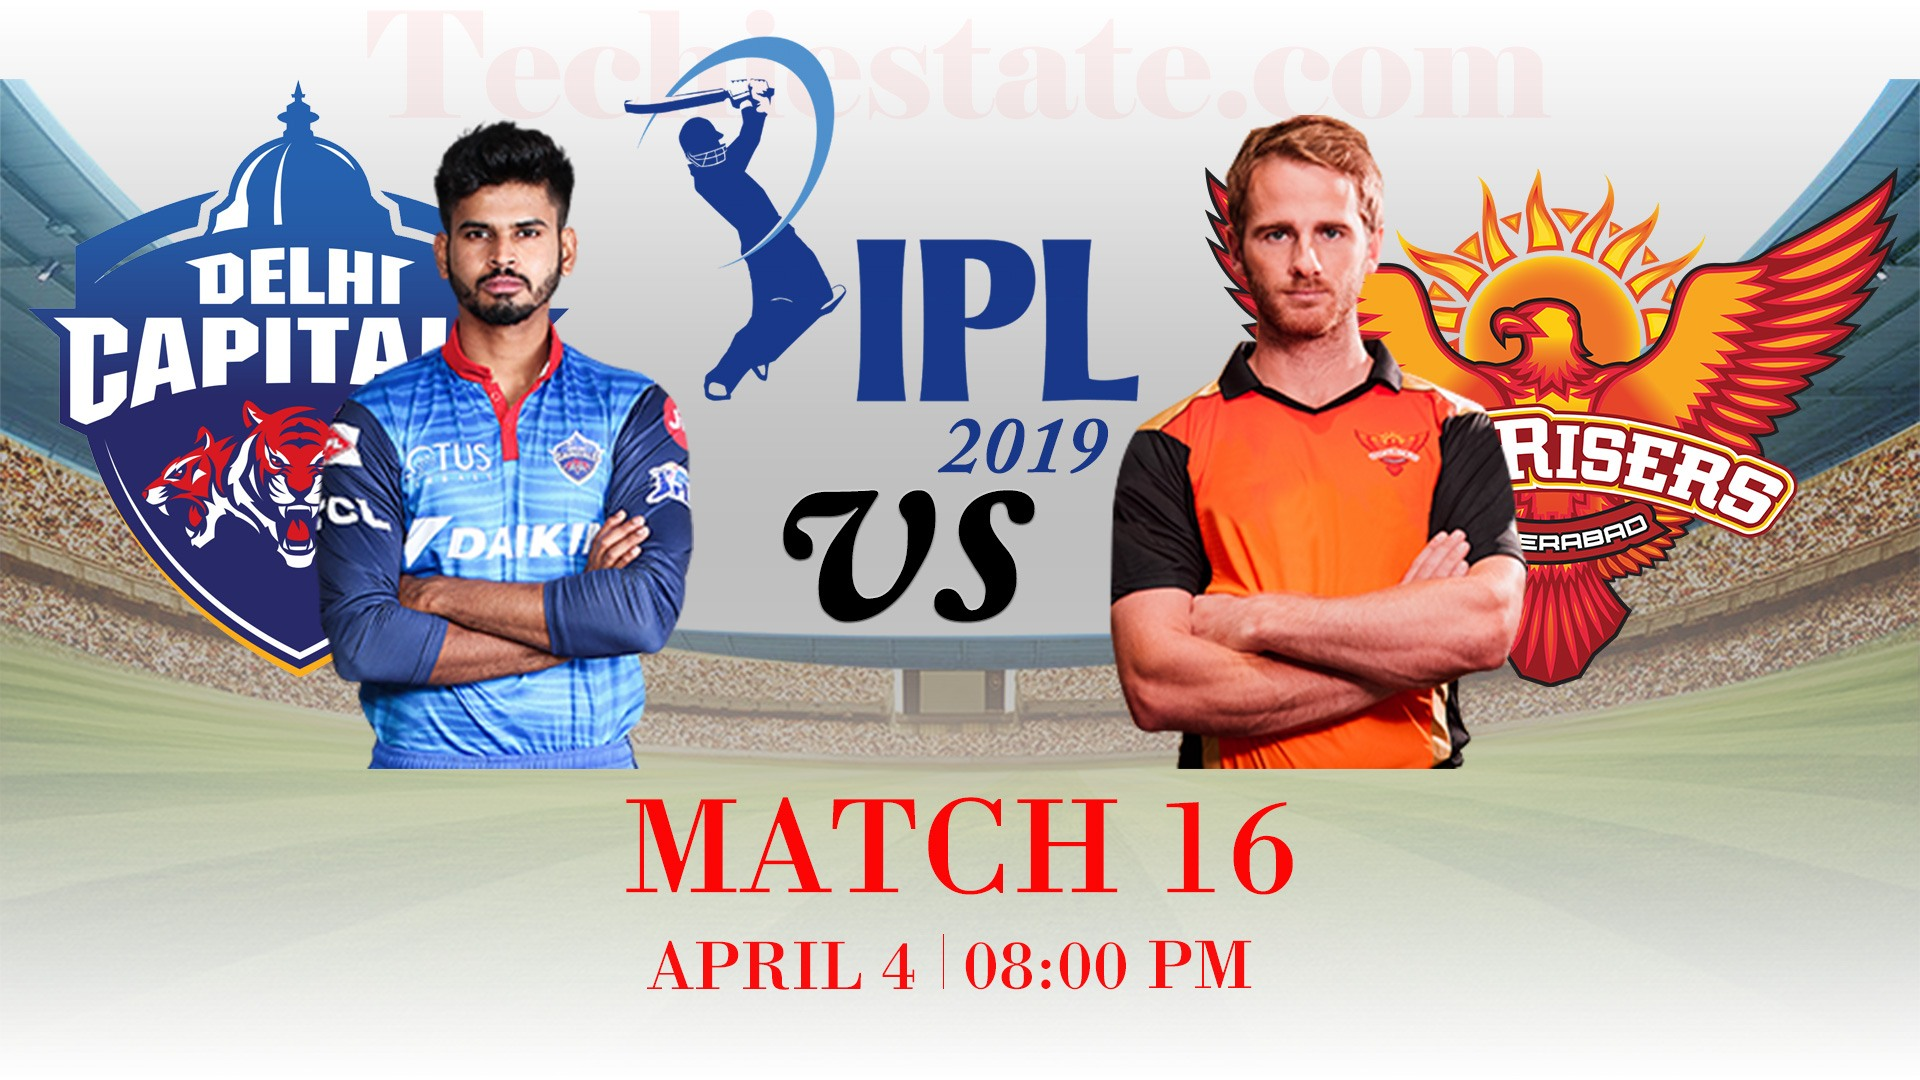 Delhi Capitals vs Sunrisers Hyderabad, 16th Match